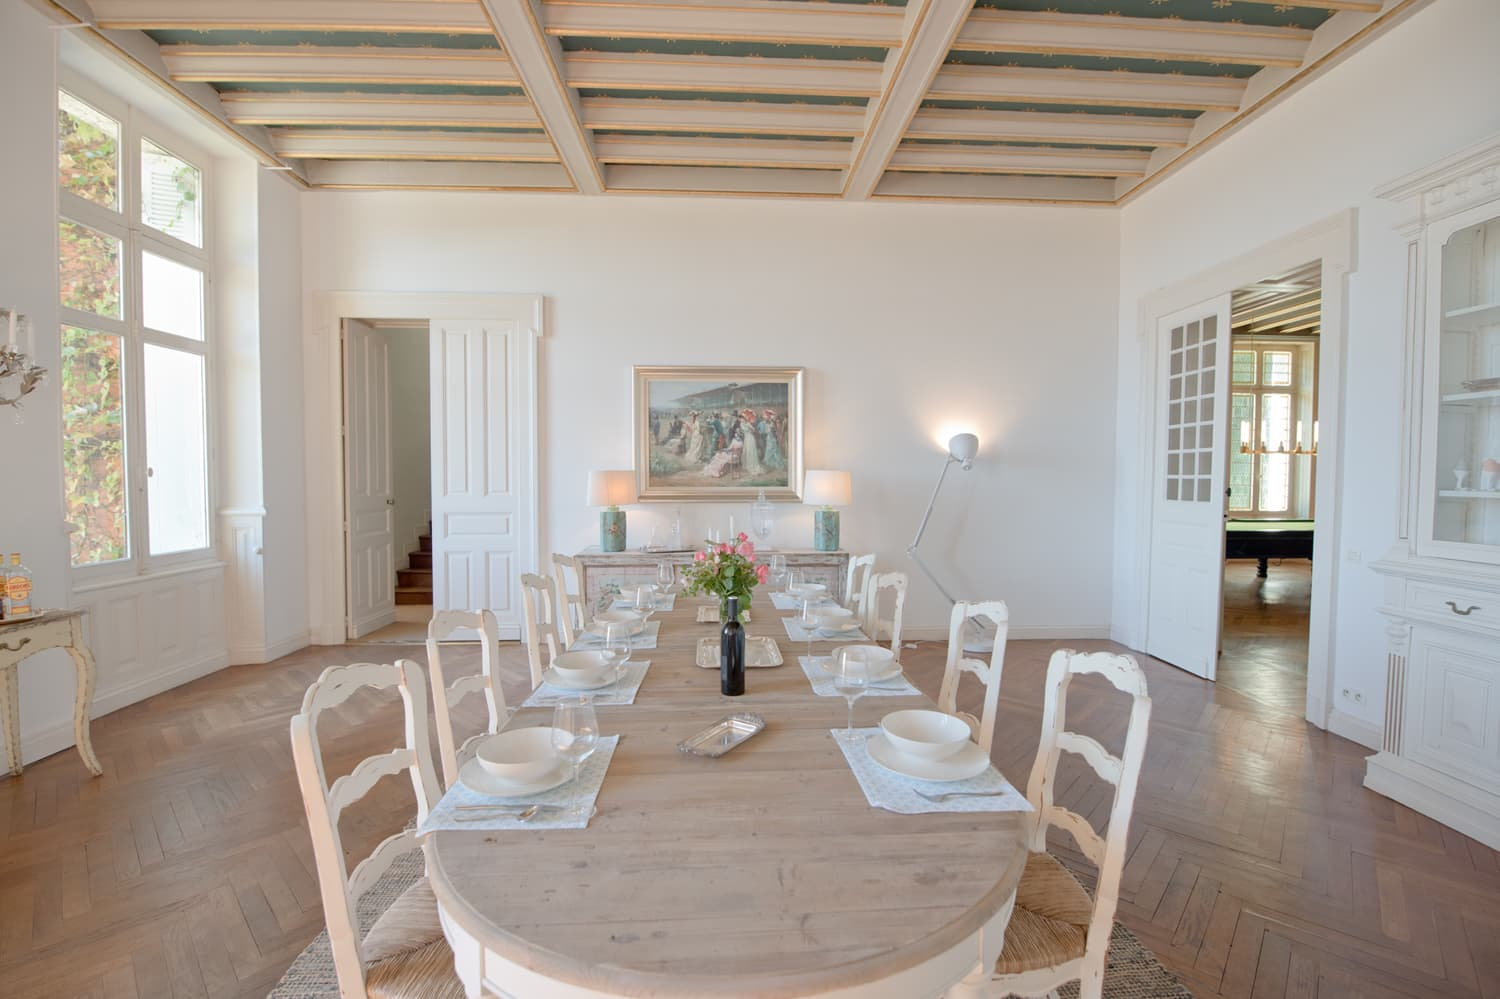 Holiday home with private pool for large groups | Clairefontaine